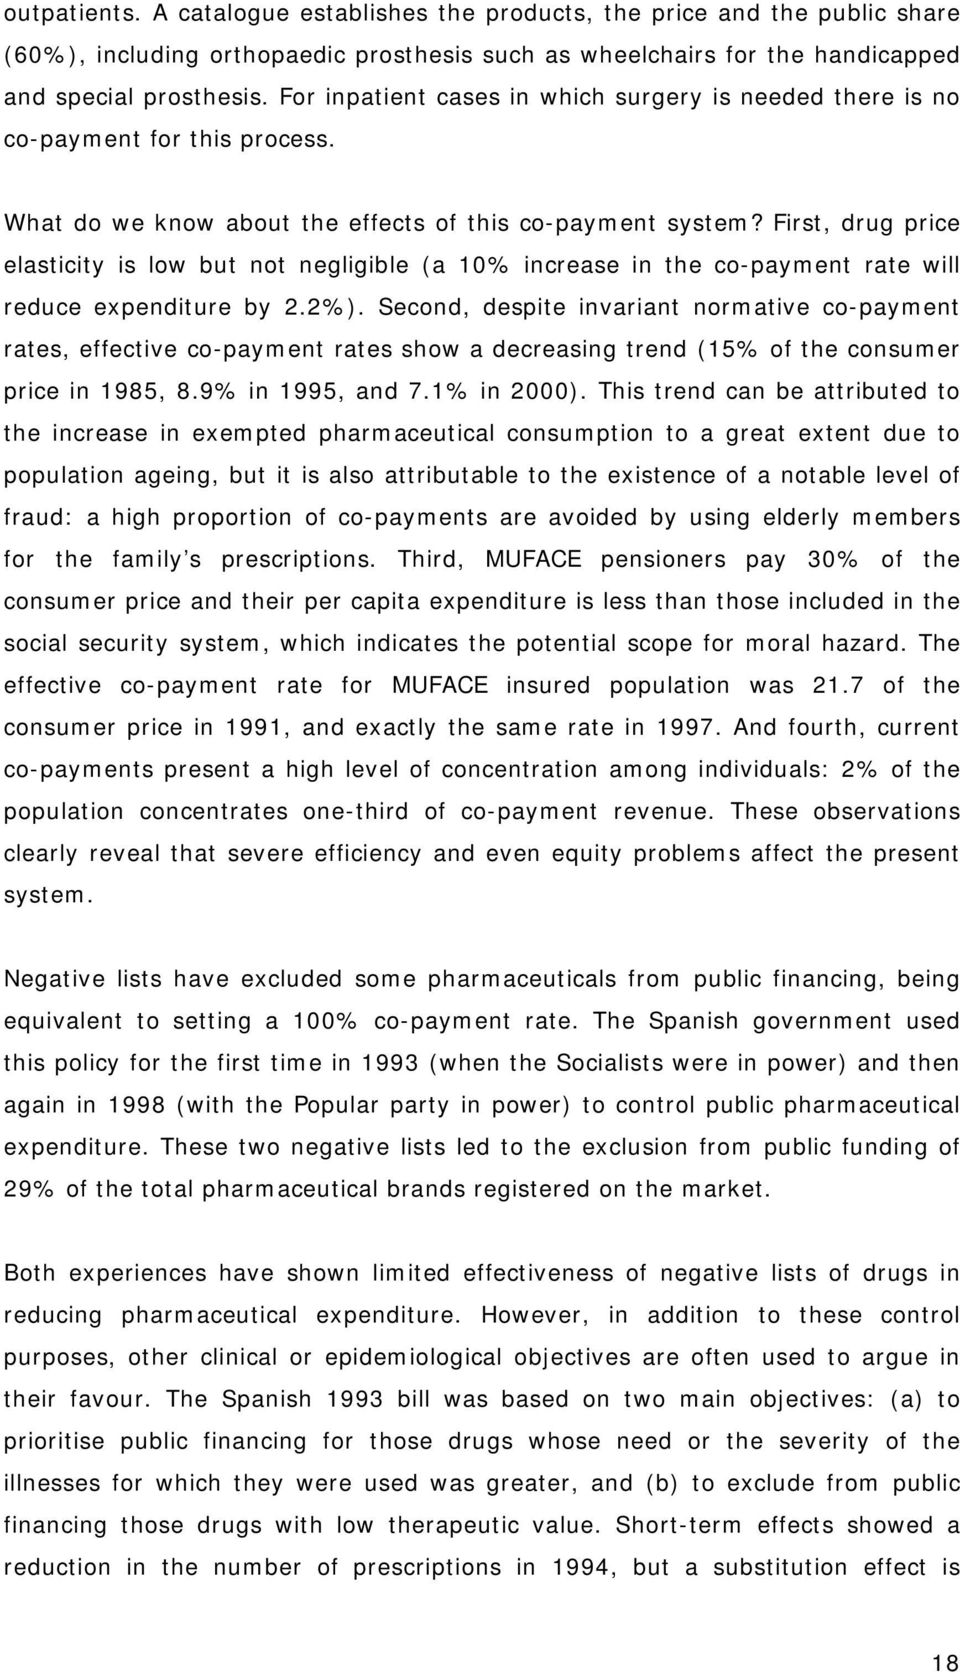 First, drug price elasticity is low but not negligible (a 10% increase in the co-payment rate will reduce expenditure by 2.2%).